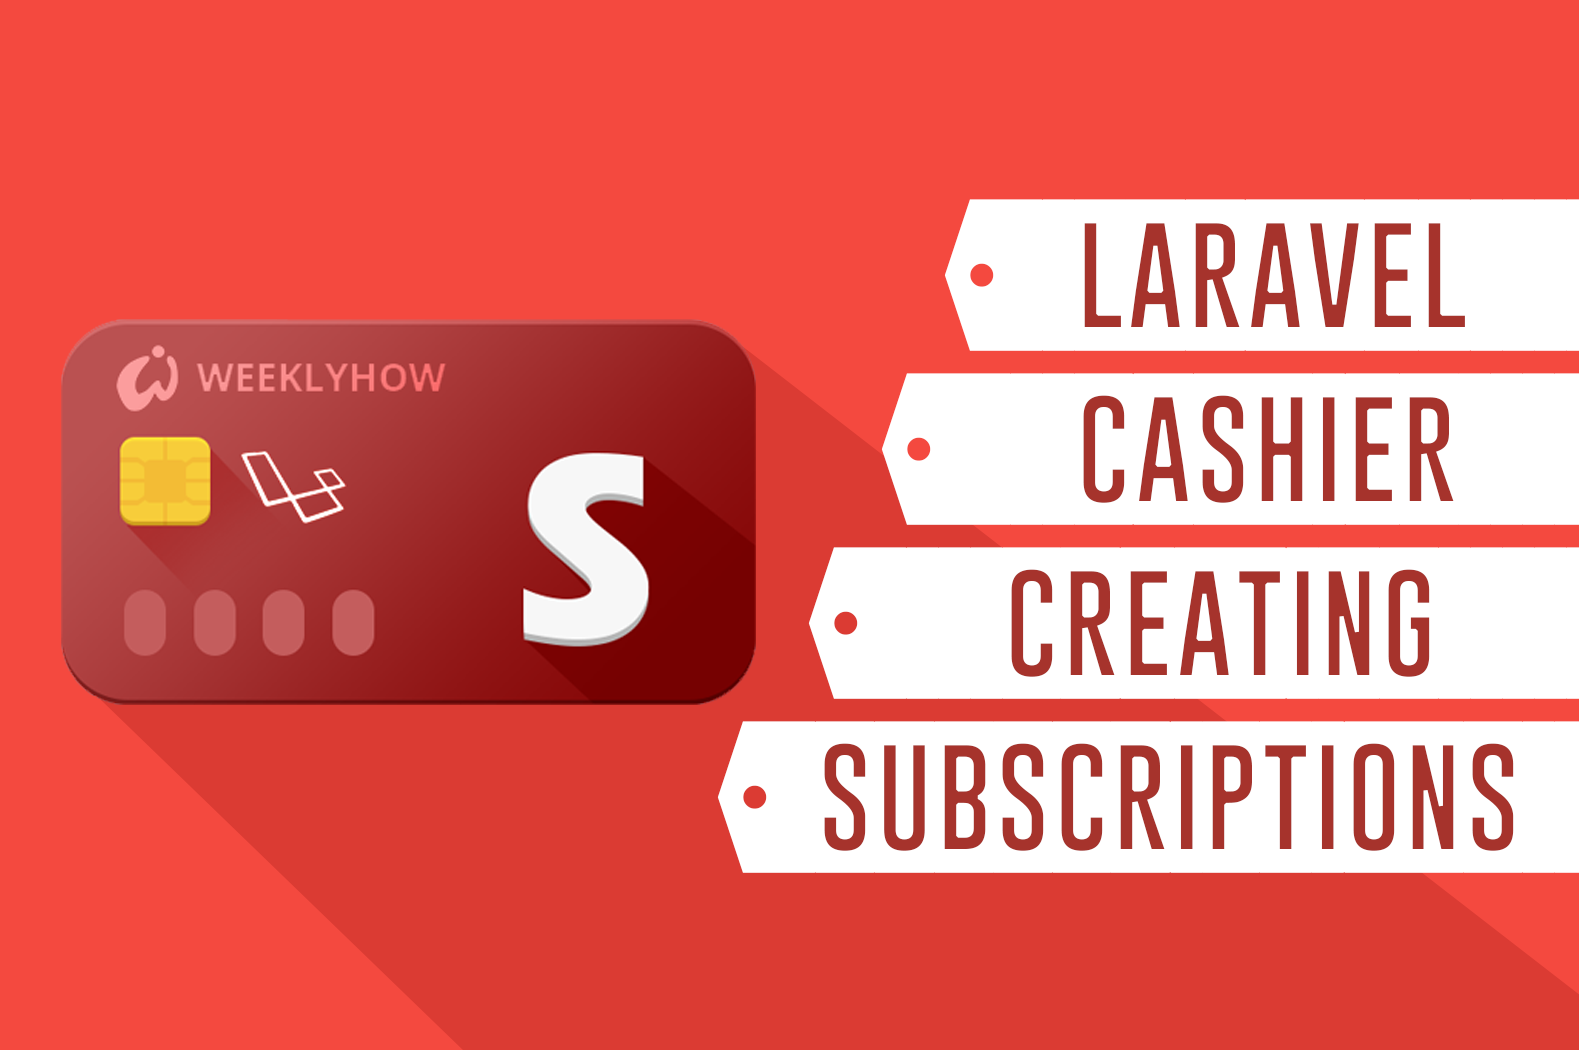 How To Create Website Subscription with Laravel Cashier